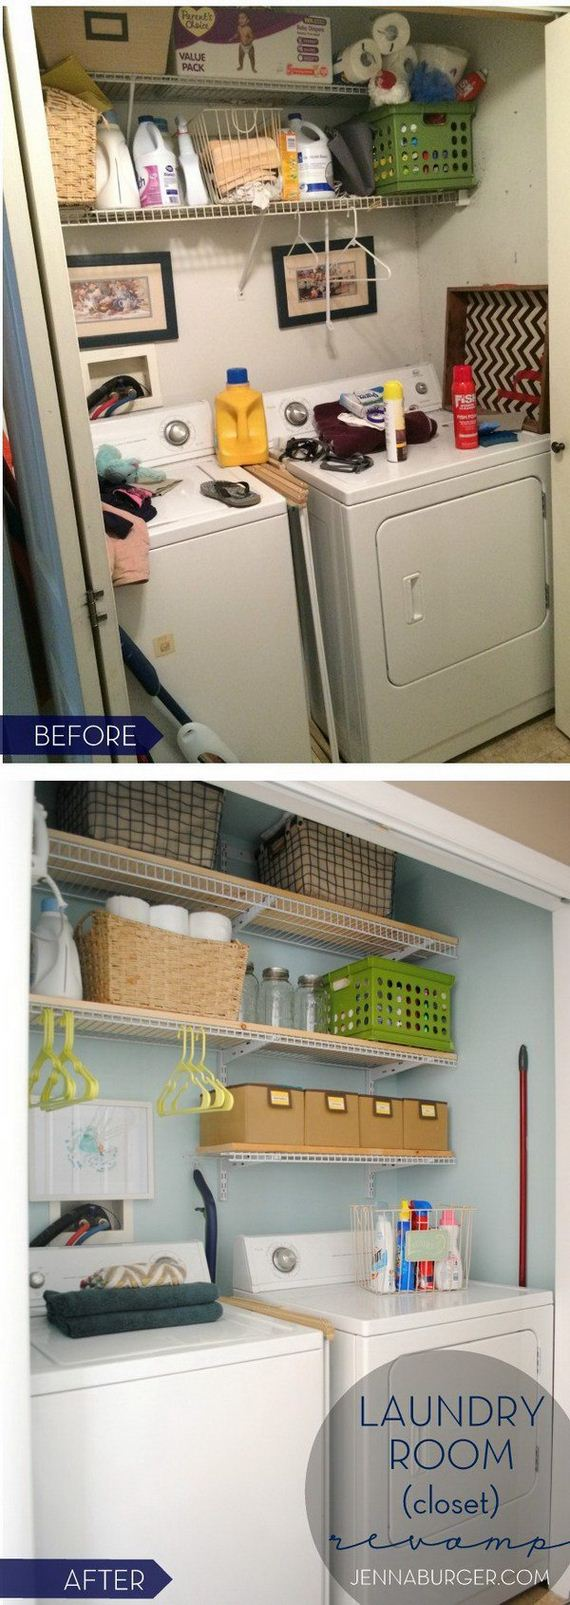 02-before-laundry-room